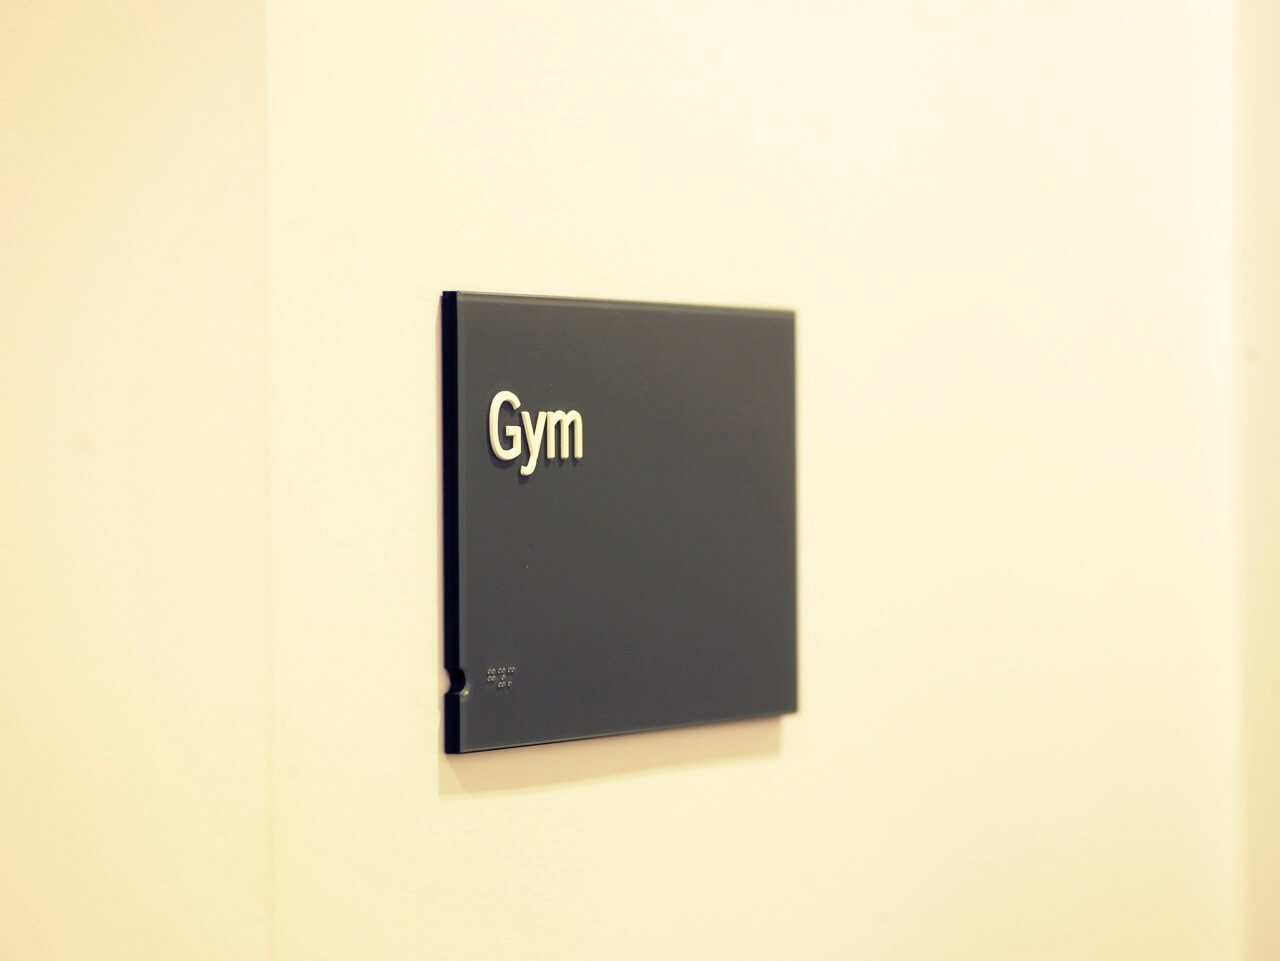 The use of Braille on this door sign is part of an accessible signage and information graphics scheme